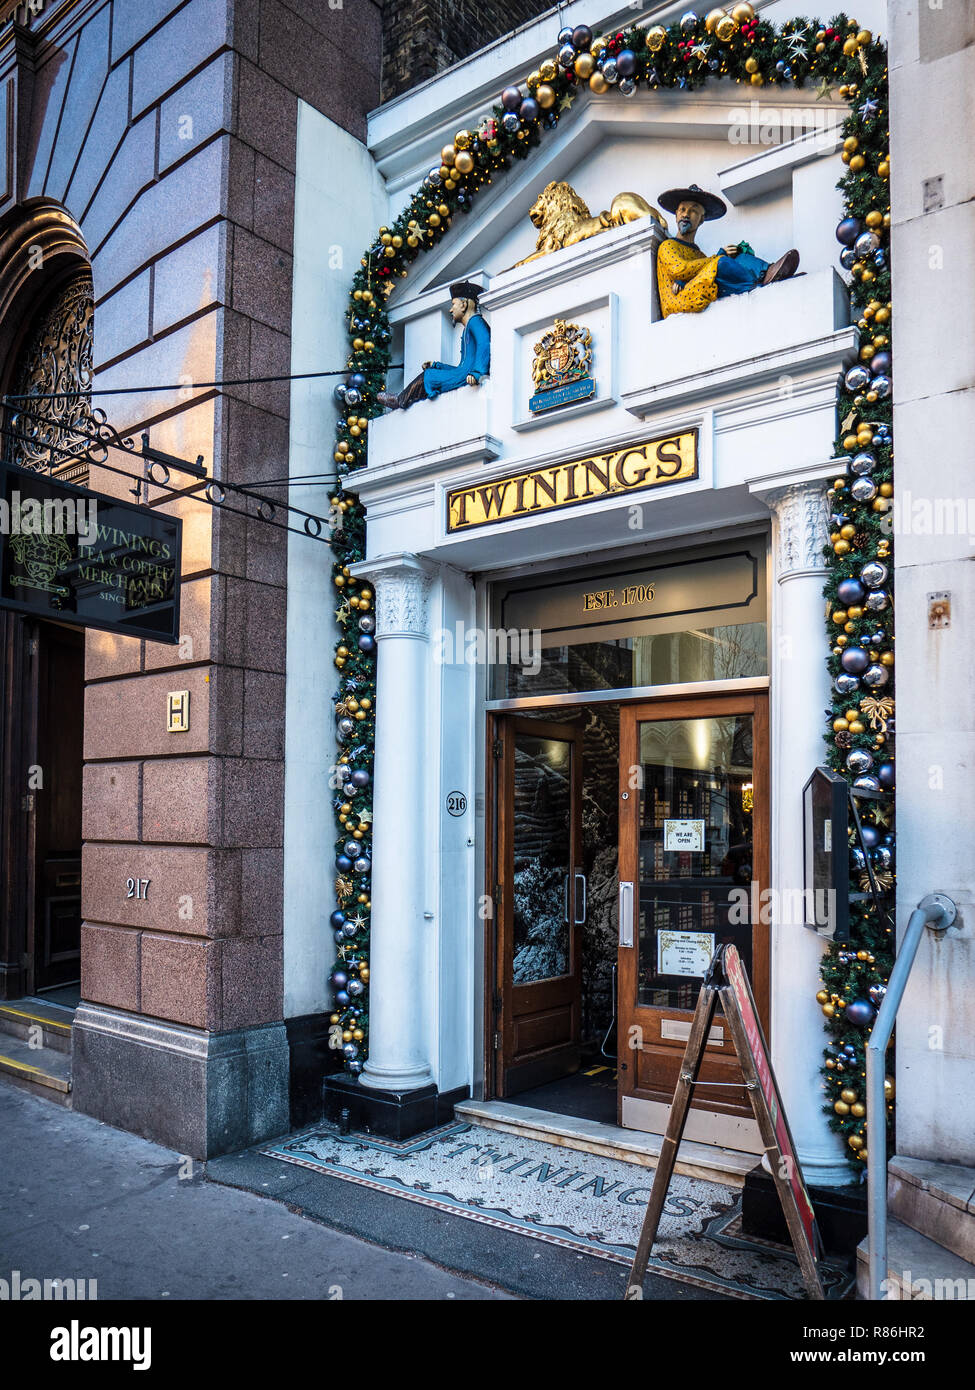 85c5f8df64 Twinings Tea historic tea store at 216 The Strand London - The oldest tea  shop in